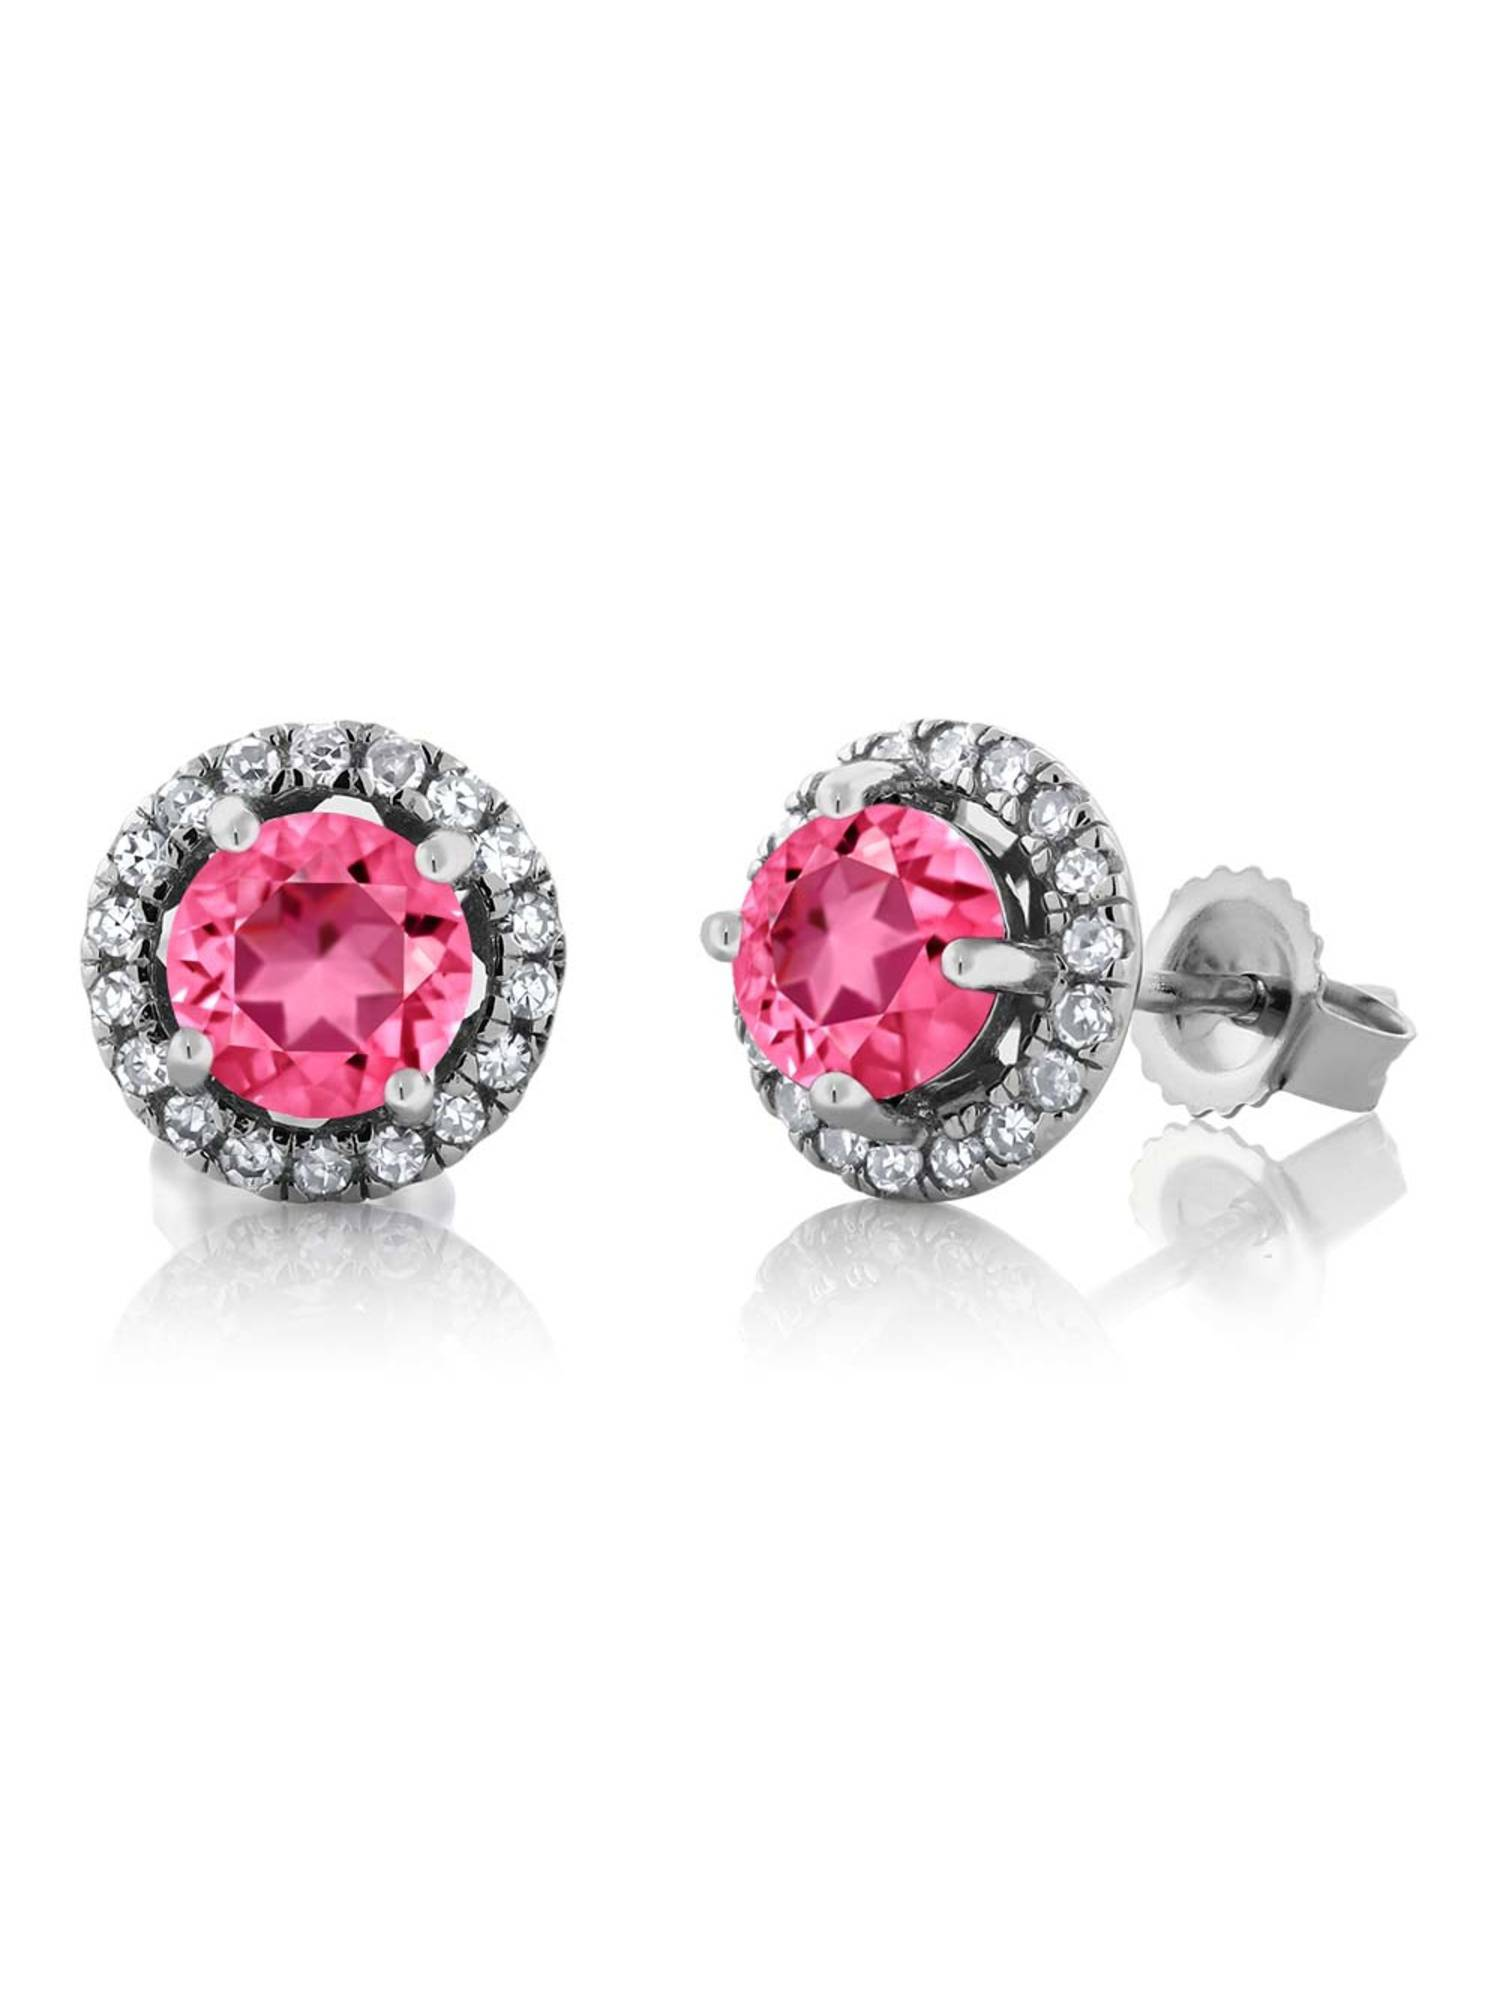 14K White Gold Diamond Earrings Set with Round Pink Topaz from Swarovski by